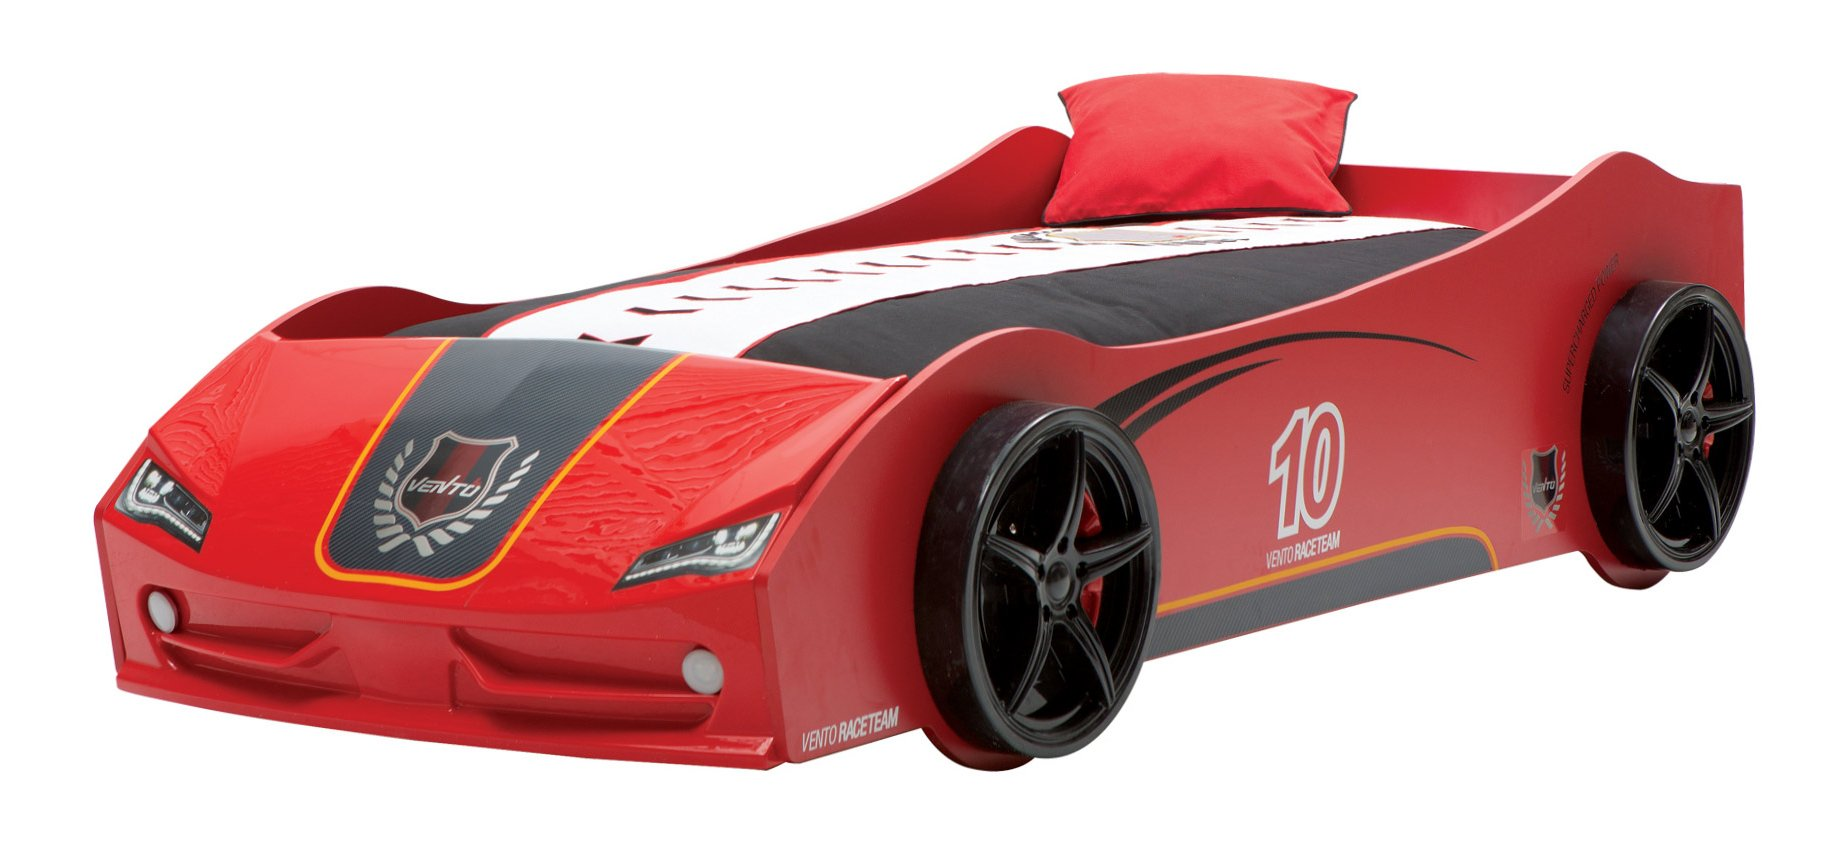 newjoy v6 vento red children s race car bed